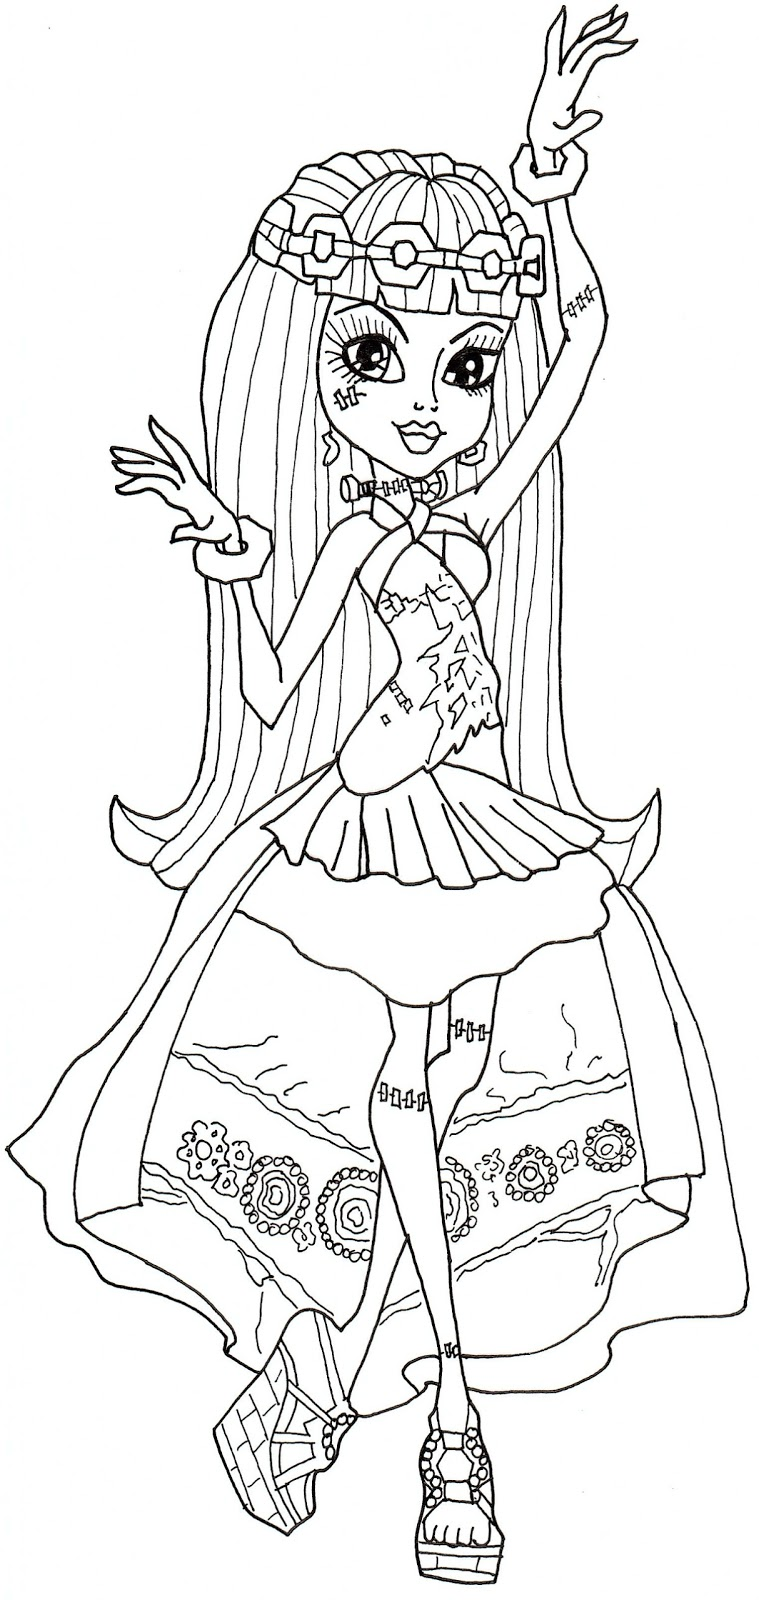 Free printable monster high coloring pages june 2013 for Monster coloring pages